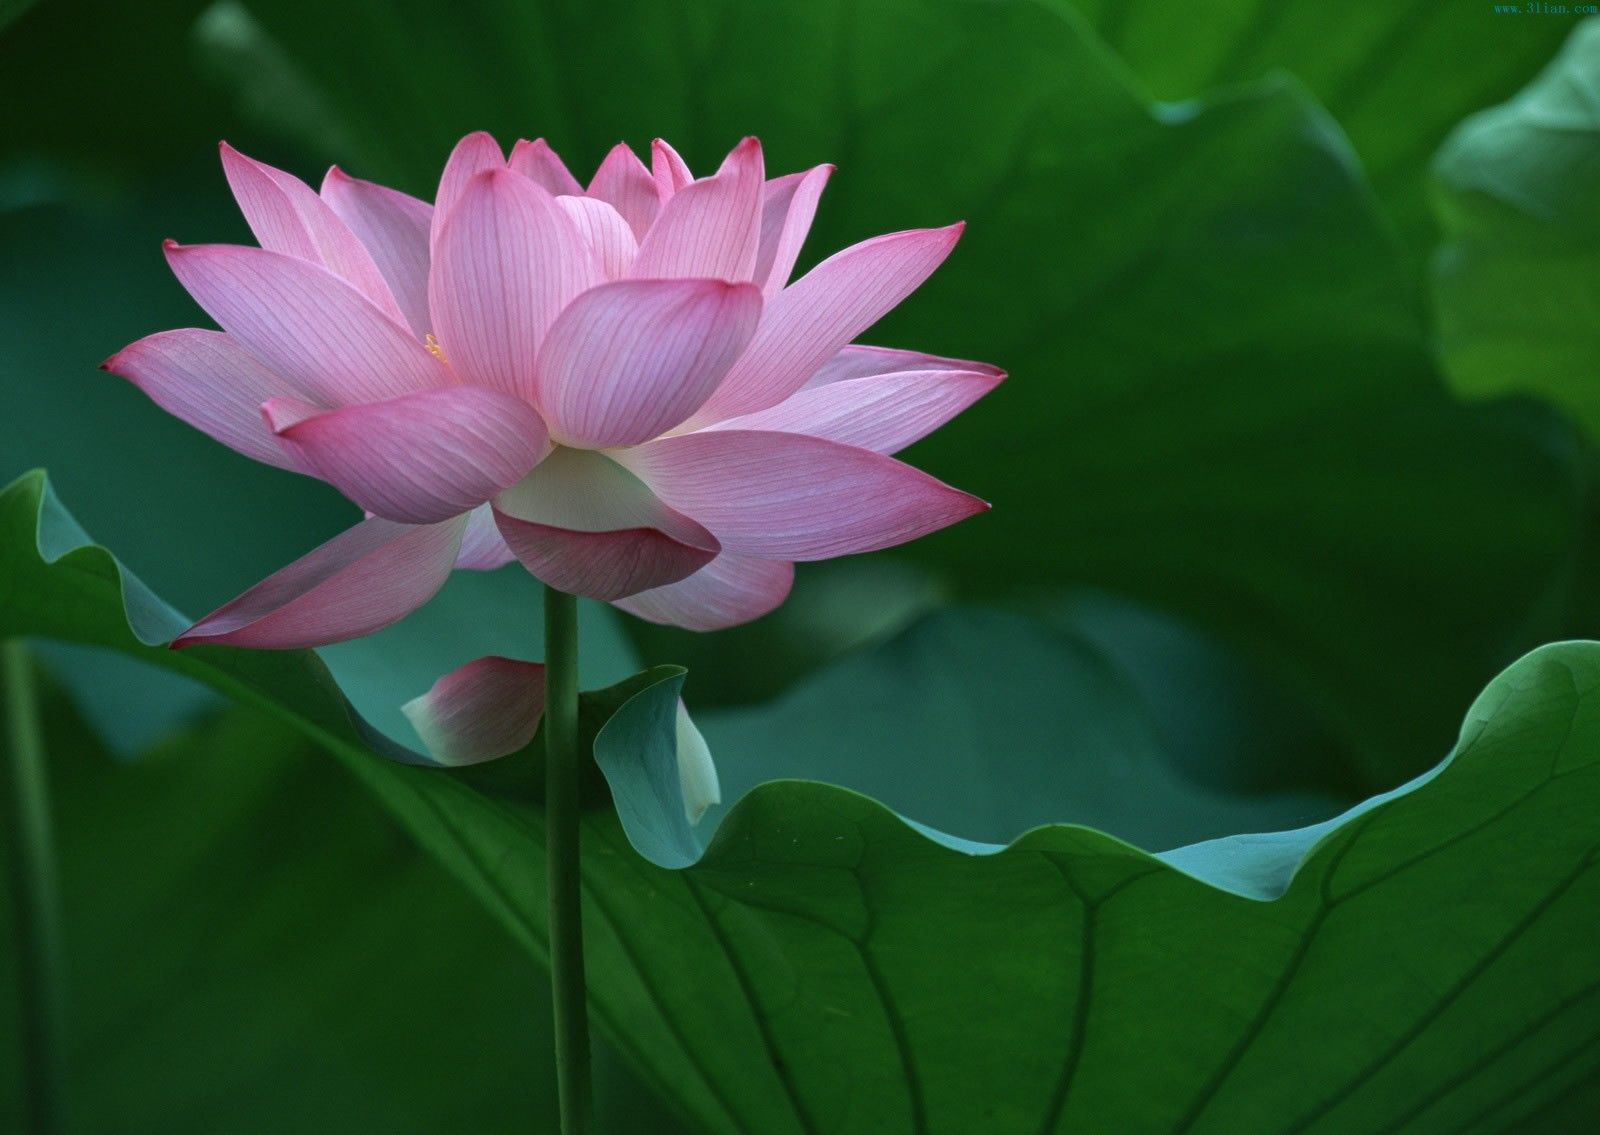 Lotus Flower Wallpapers.